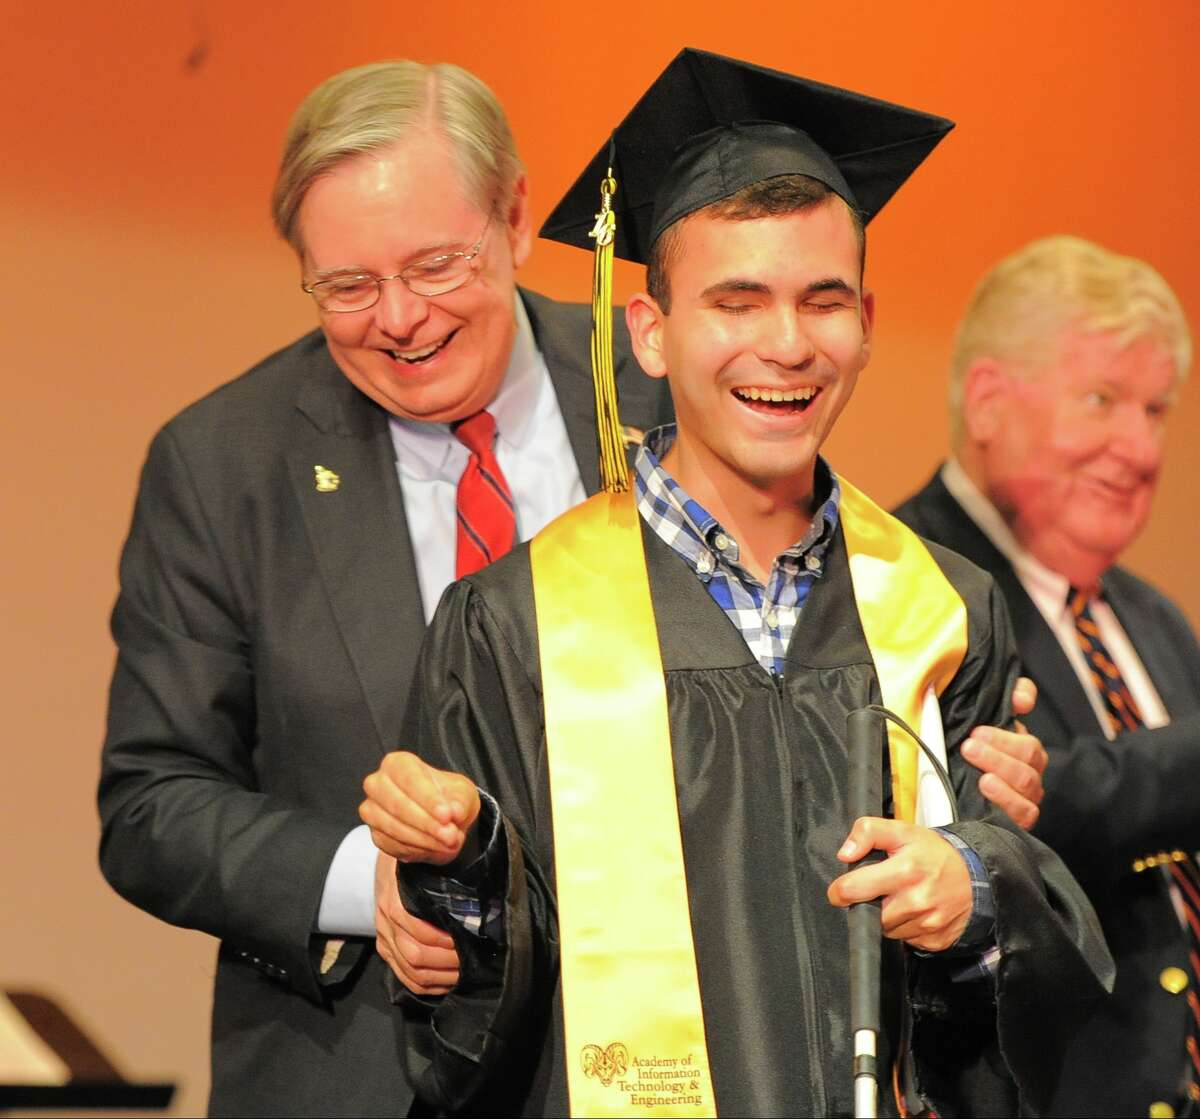 Stamford Mayor David Martin faces Brian Martin towards the audience as he makes his way across stage and is recognized with a standing ovation by his peers and audience during the Academy of Information Technology and Engineering Class of 2016 commencement at the school in Stamford, Conn., on Tuesday, June 14, 2016. Martin express it was his goal to navigate the stage unassisted when it came time to receiving his diploma.